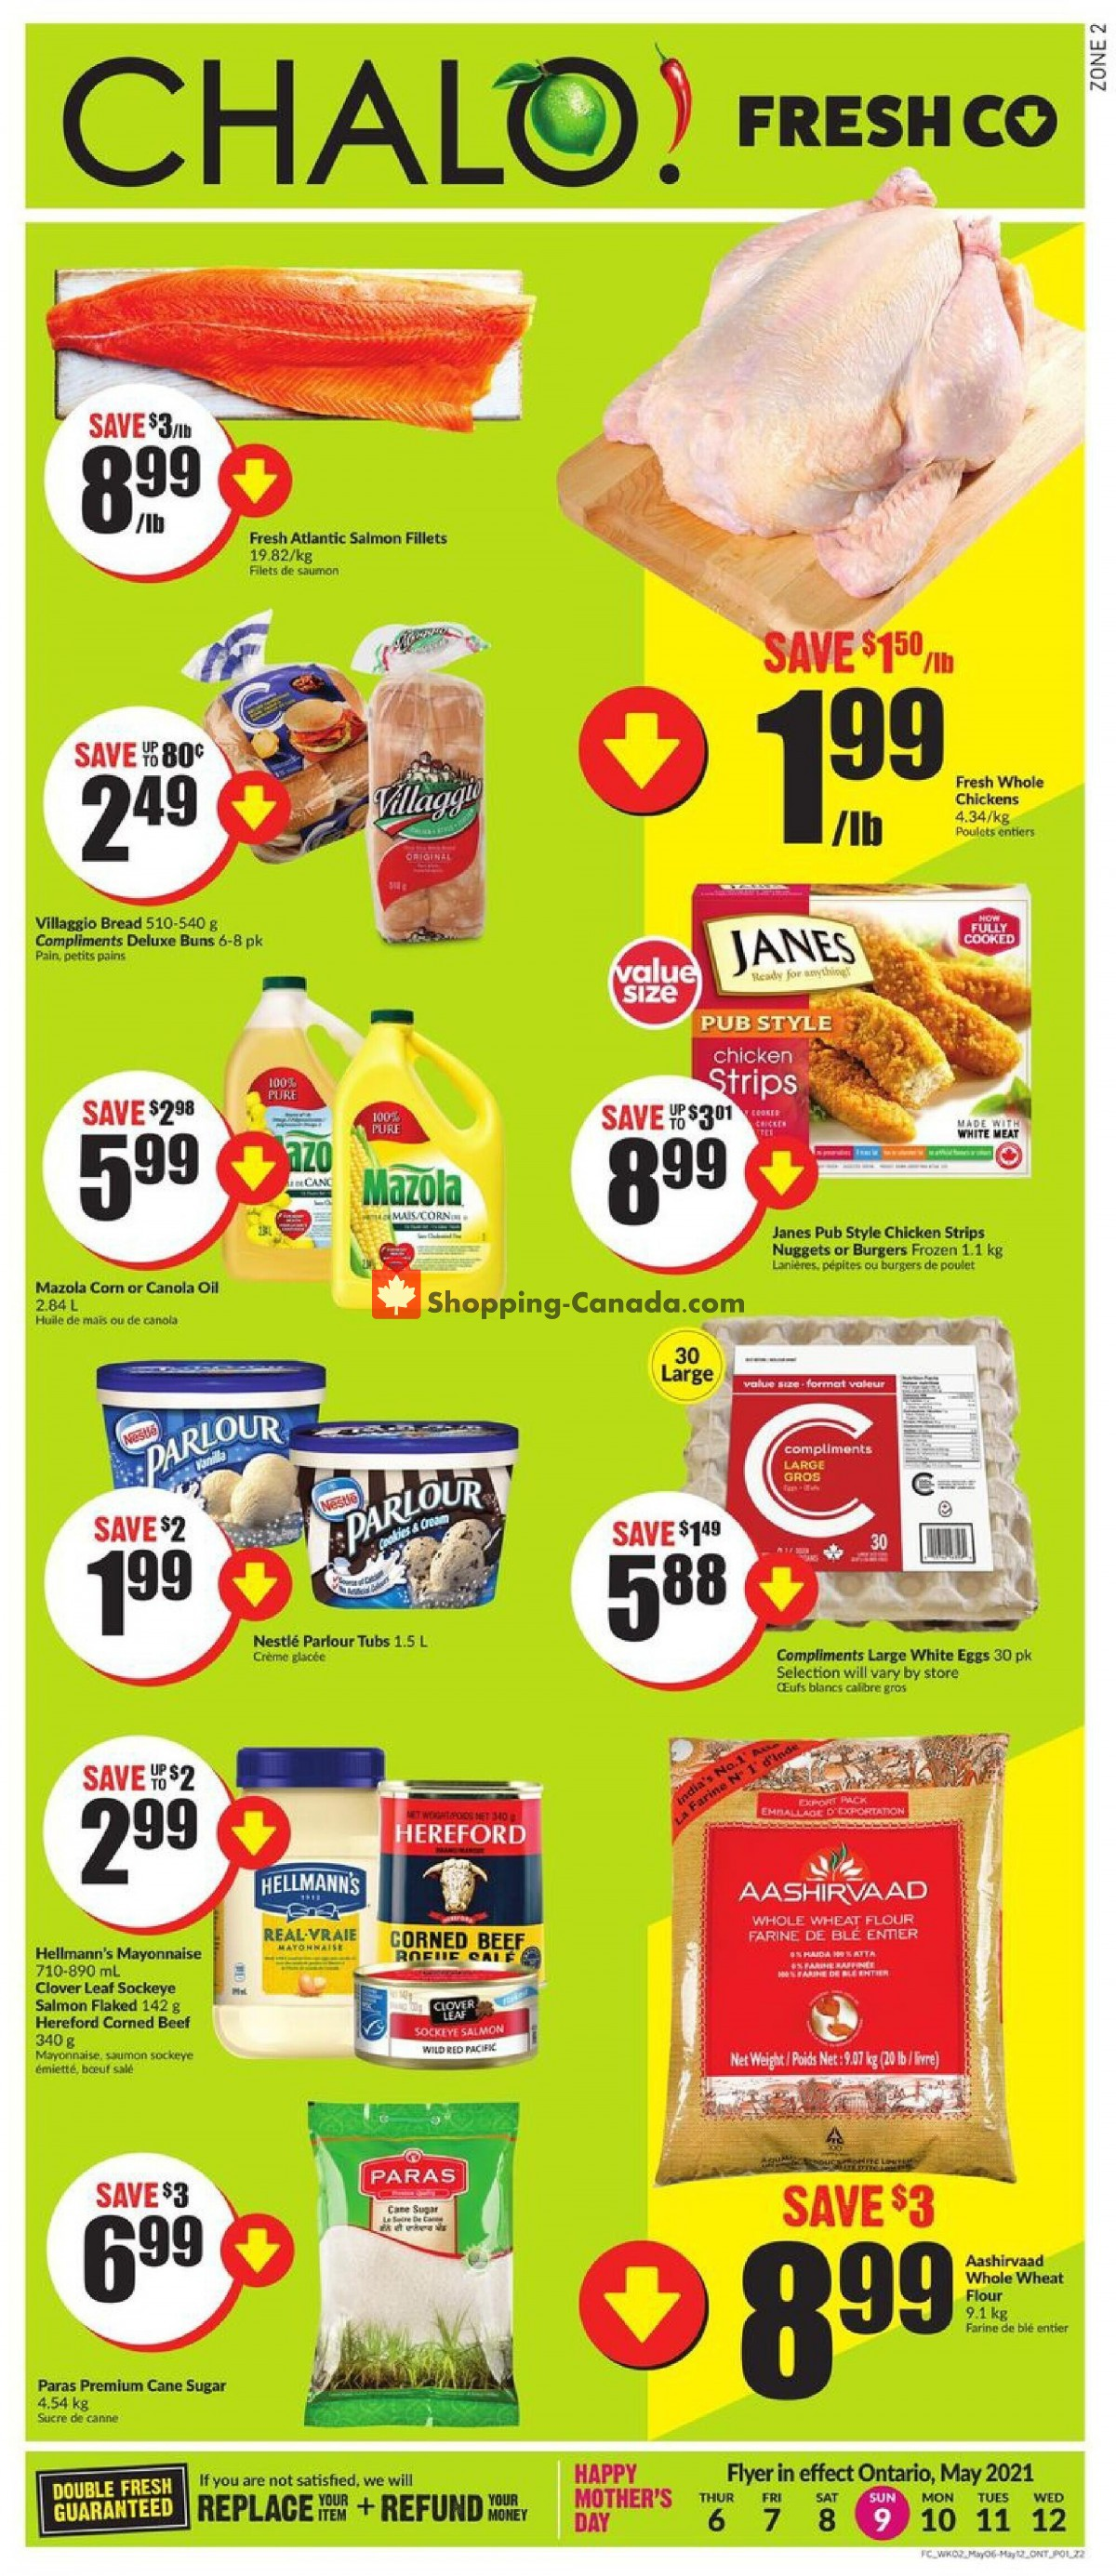 Flyer Chalo FreshCo Canada - from Thursday May 6, 2021 to Wednesday May 12, 2021